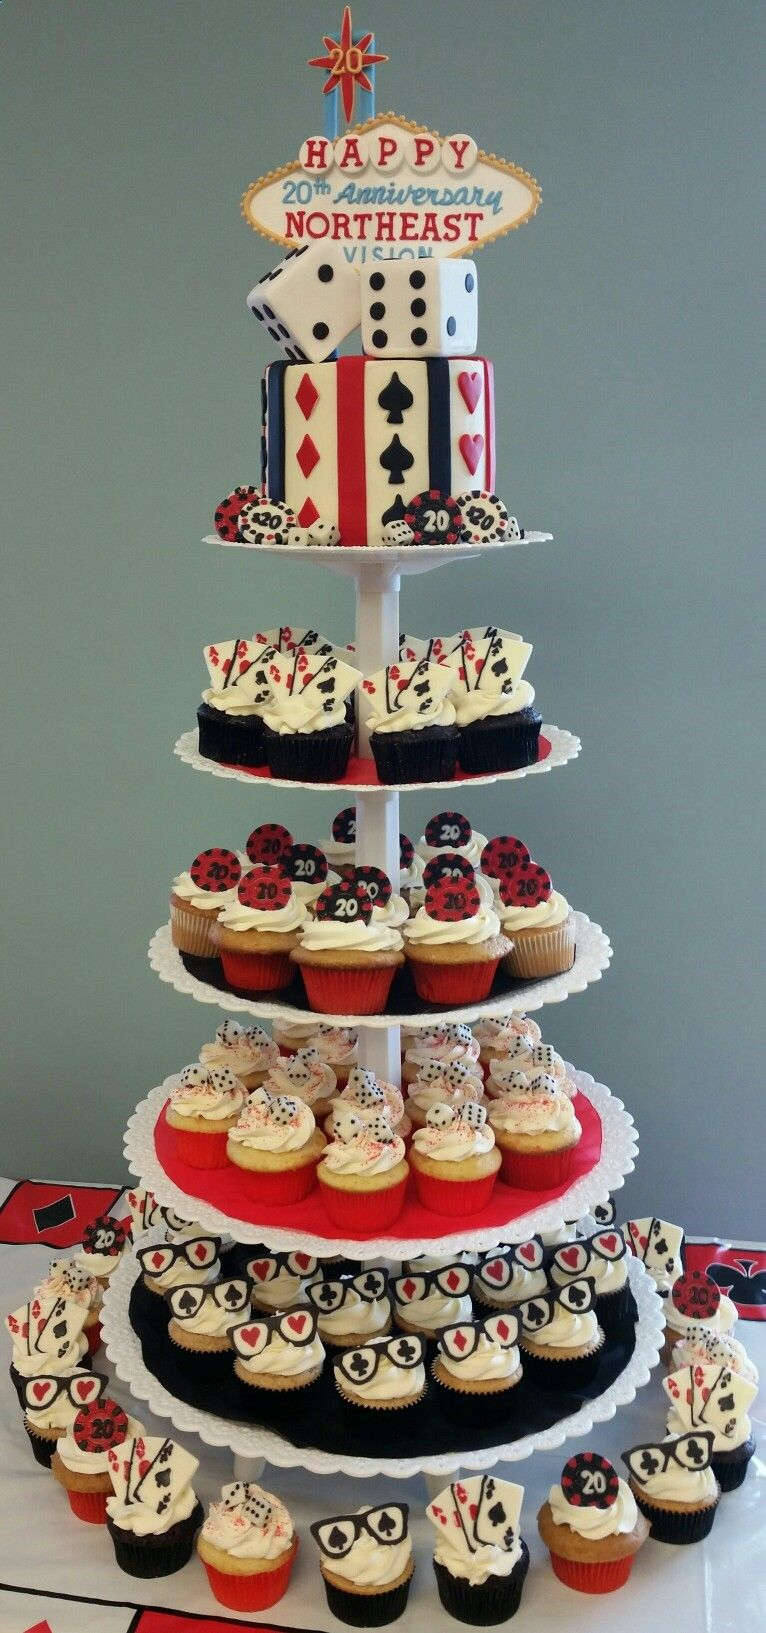 Cake and cupcakes for a casino themed 20th anniversary